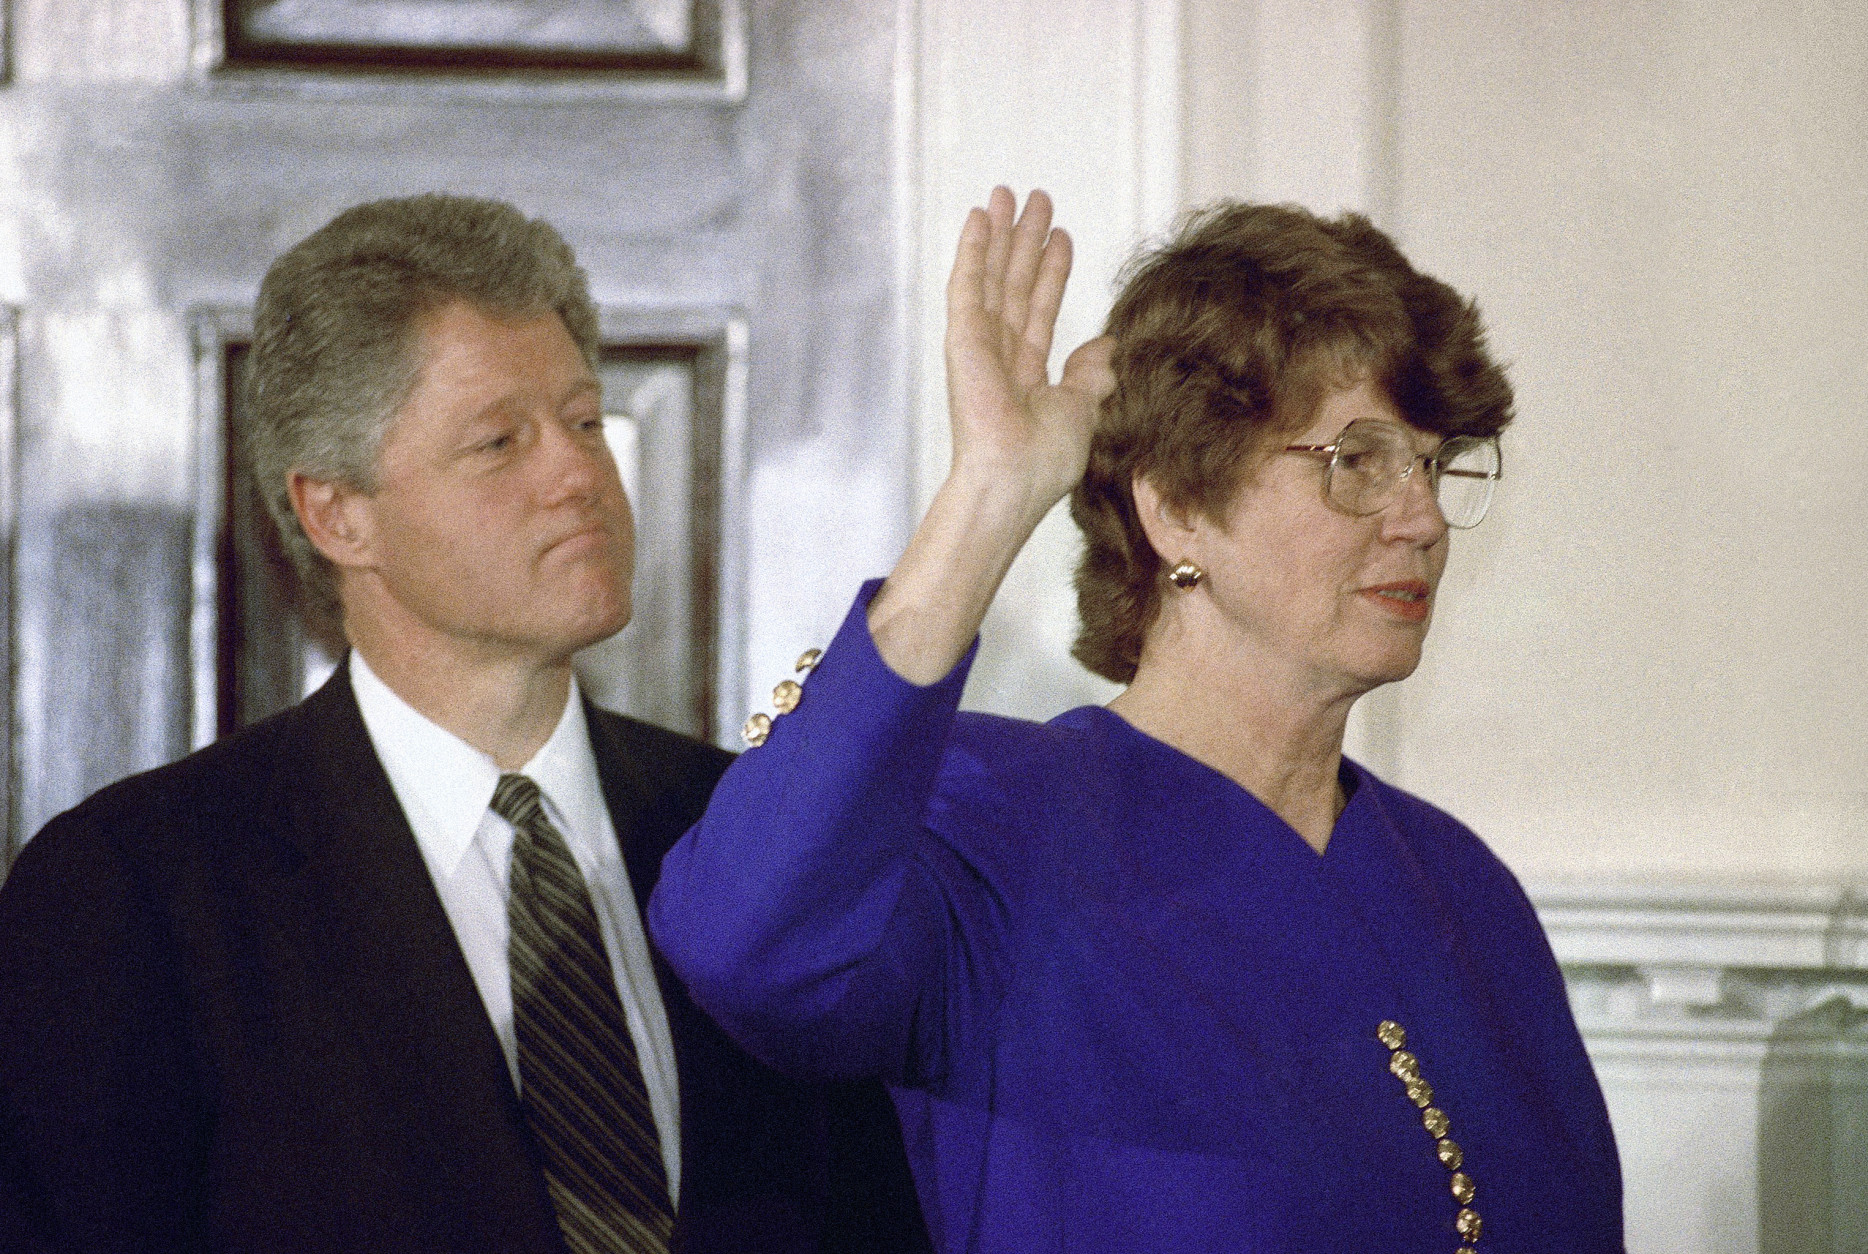 While President Bill Clinton looks on, Janet Reno takes the oath as attorney general during a ceremony at the White House in Washington on March 12, 1993. Supreme Court Justice Byron White administered the oath to Reno who became the nation's first female attorney general. (AP Photo/Barry Thumma)